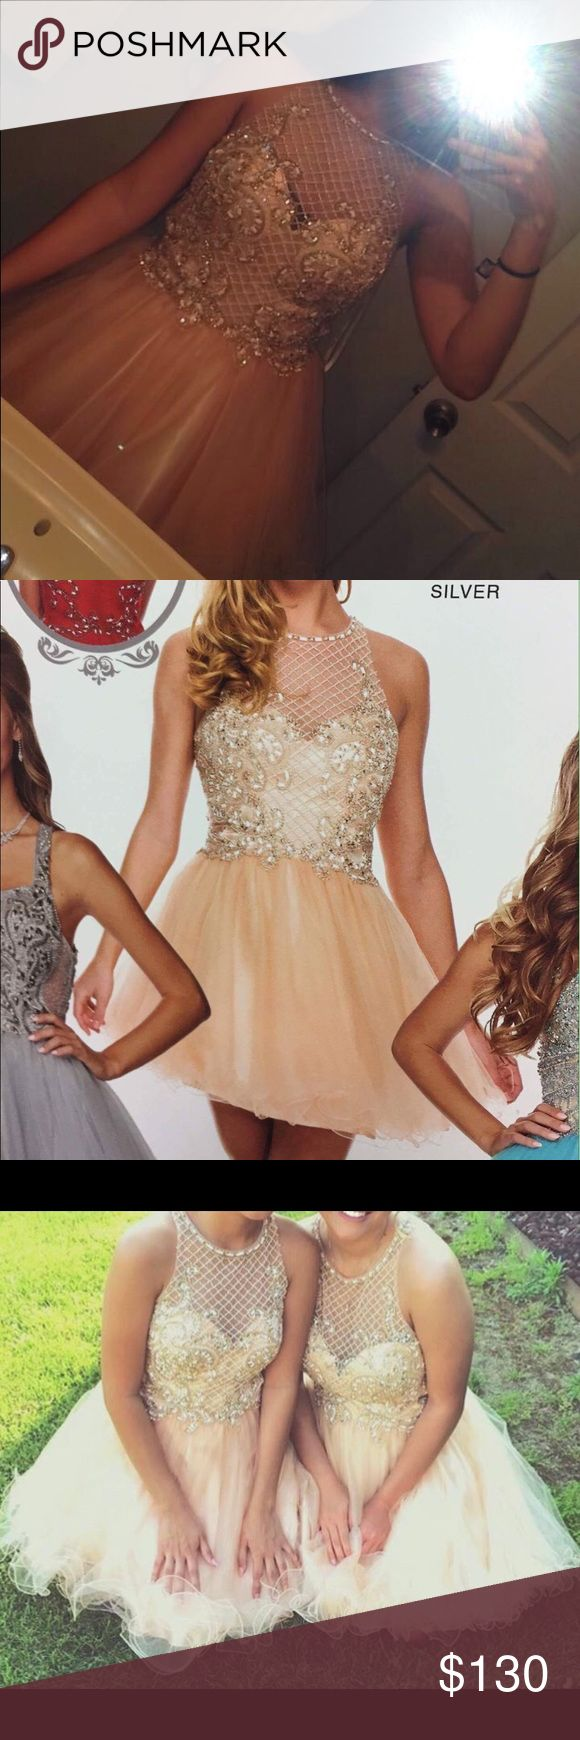 Champagne colored homecoming dress Beautiful homecoming dress, only worn once. In very good condition. I have matching heels if you are interested I will sell them for only $20 Dresses Mini